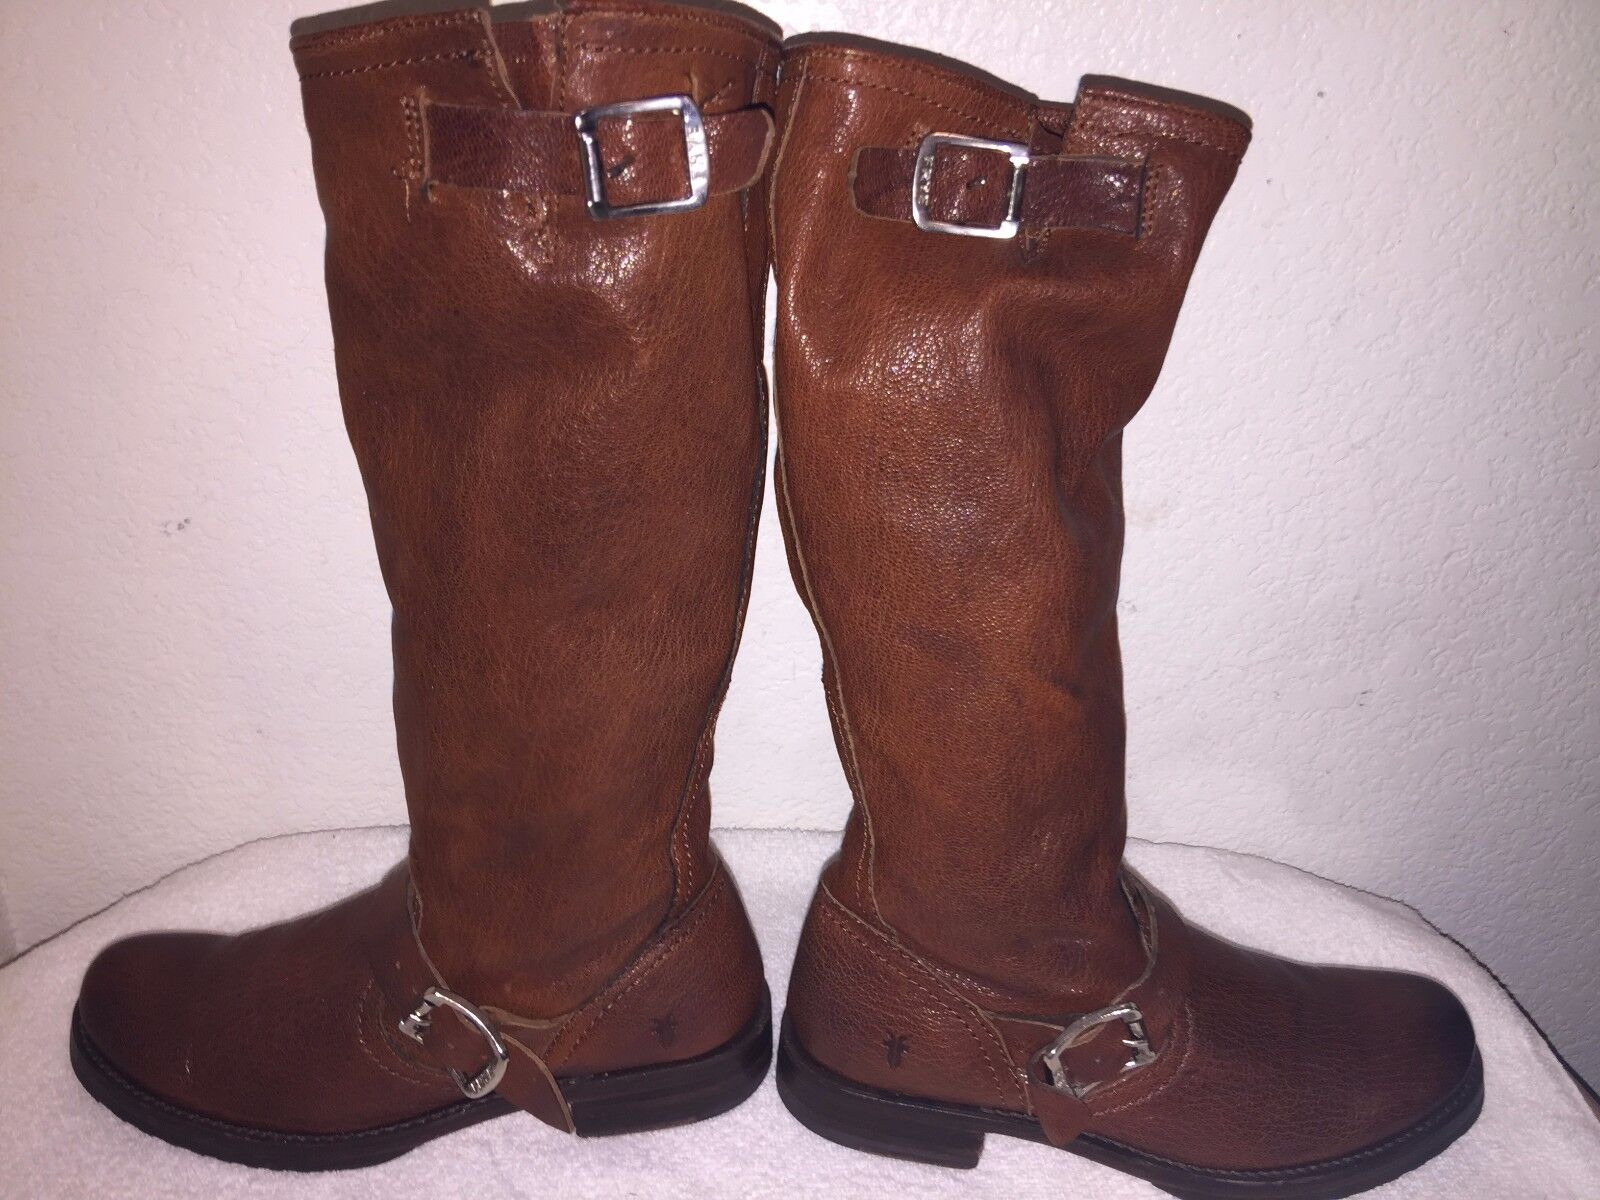 Frye Veronica Brown Leather Women's Boots Size 6.5-B